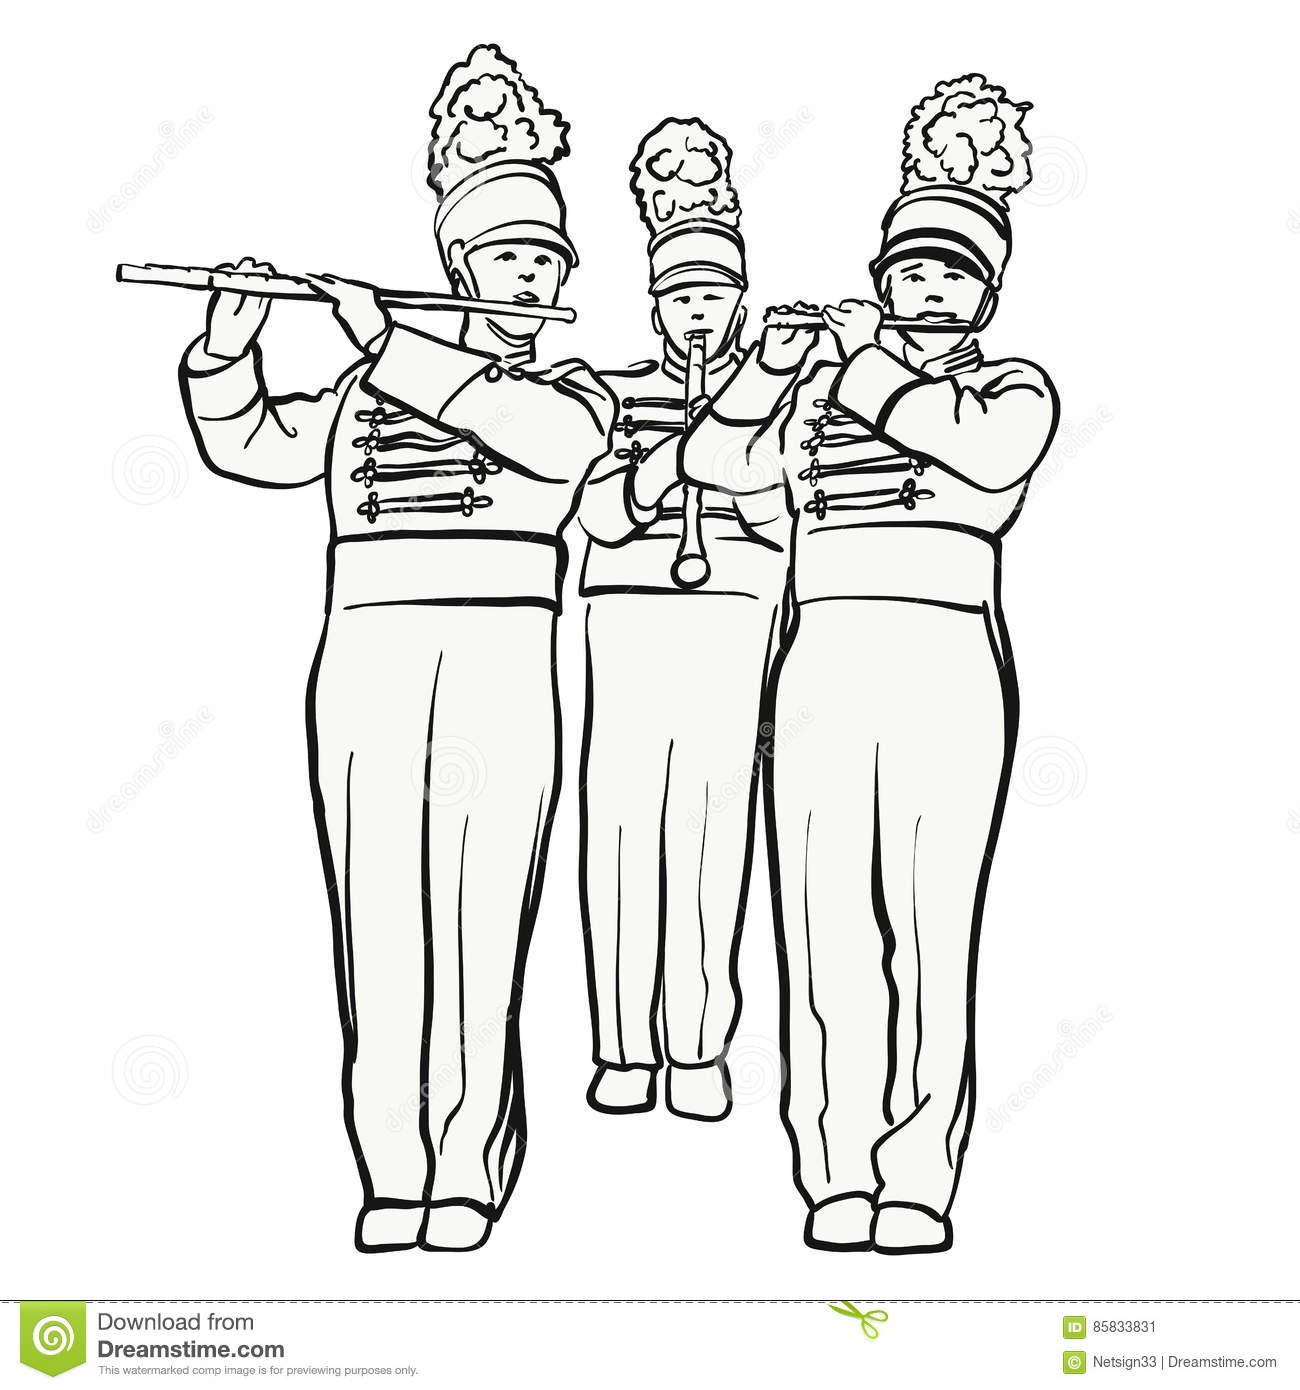 Historical Marching Band With Quiver Flutes, Vector Sketch Stock.